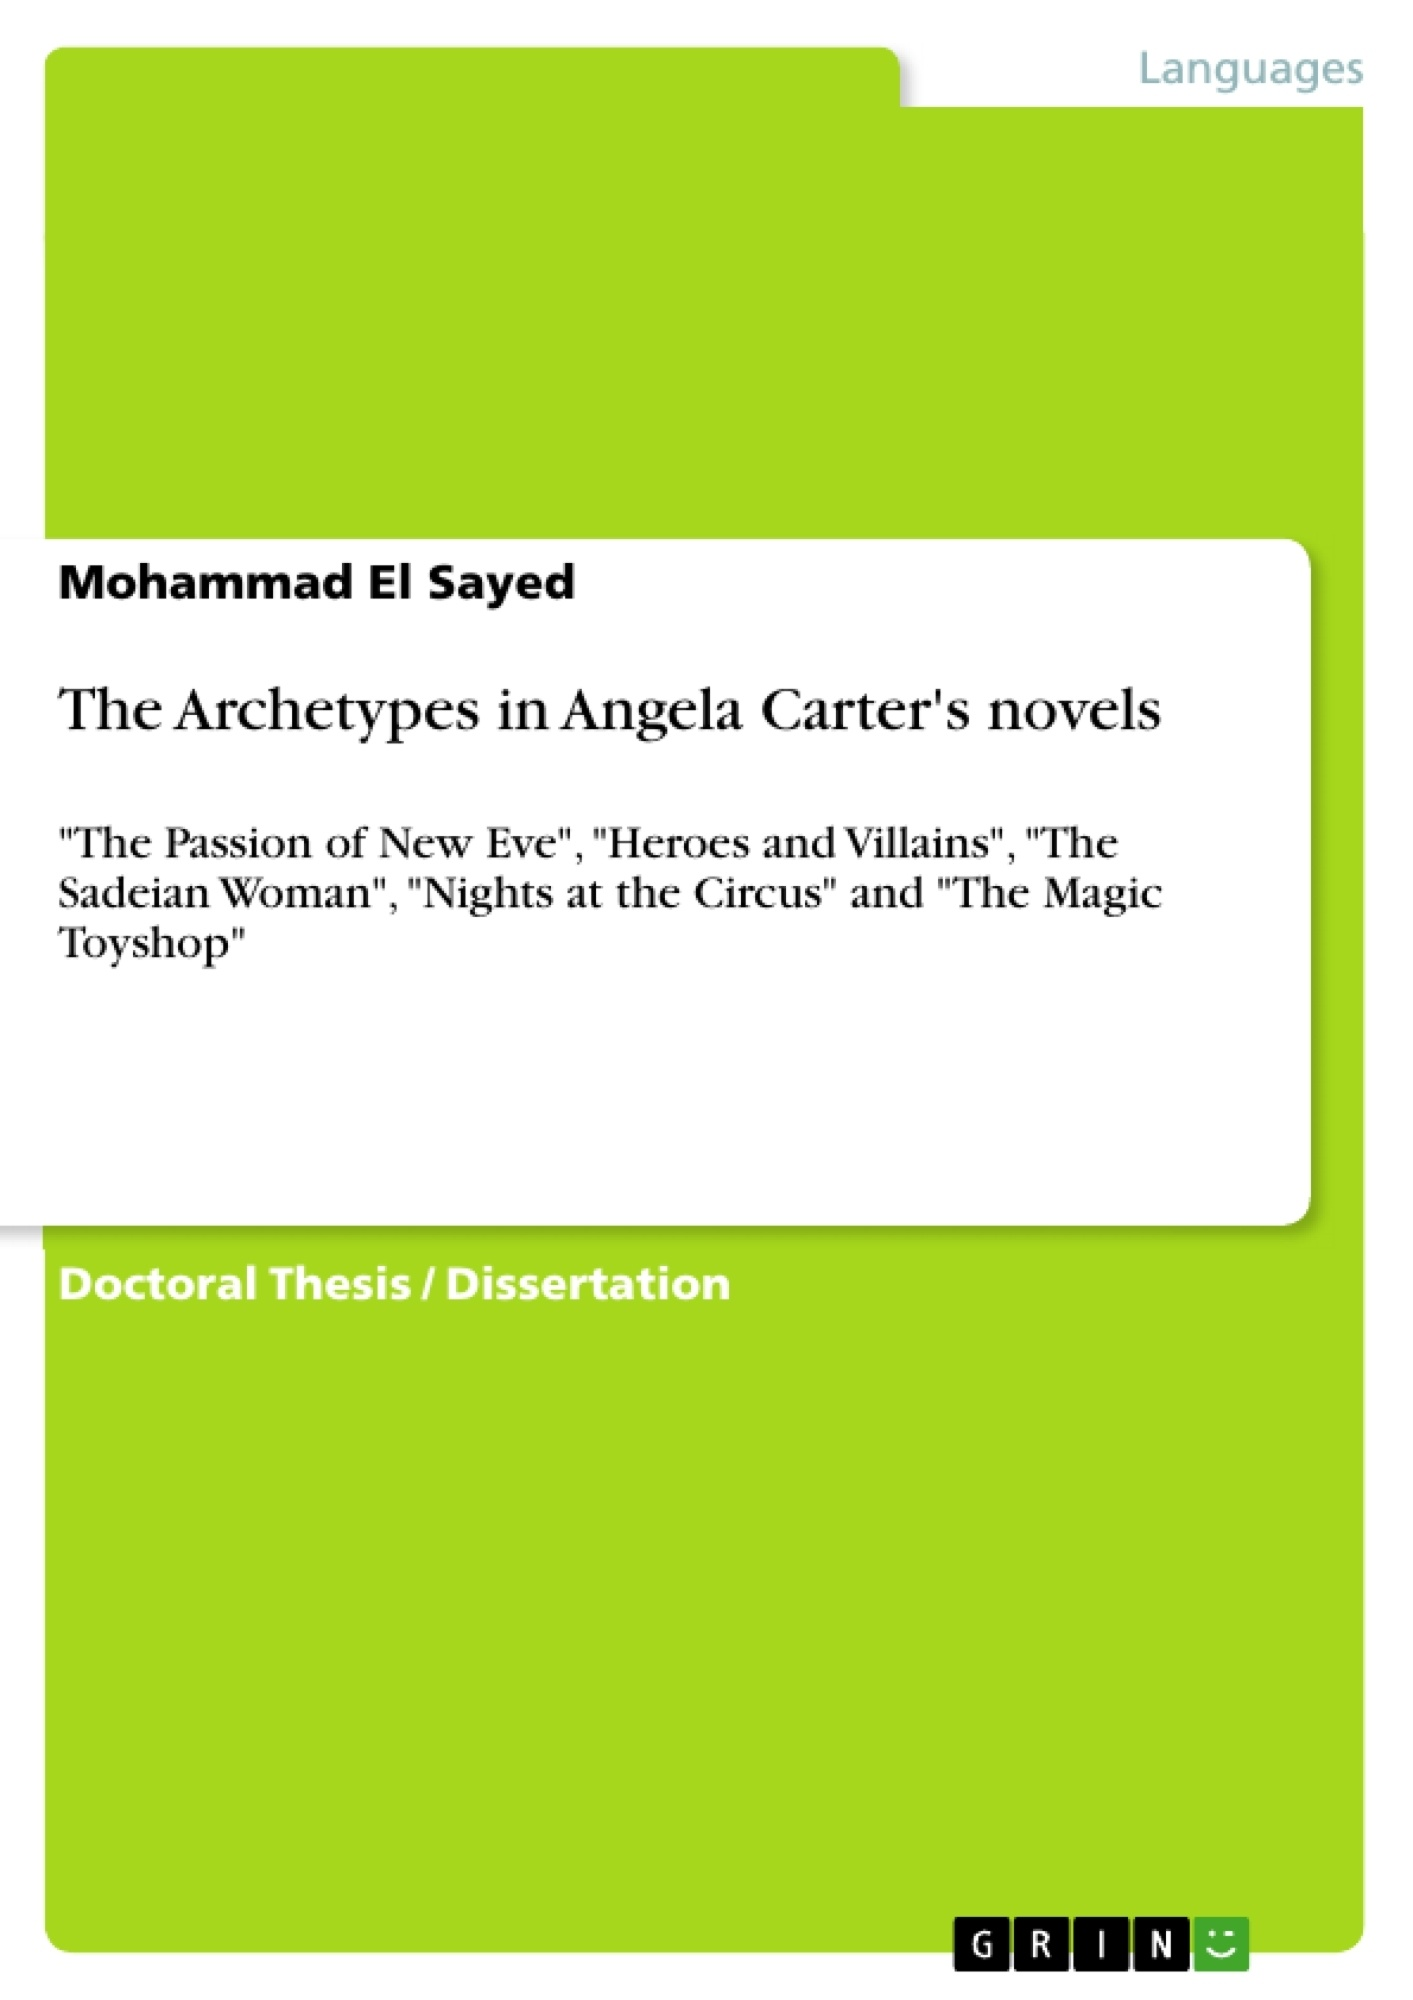 Title: The Archetypes in Angela Carter's novels